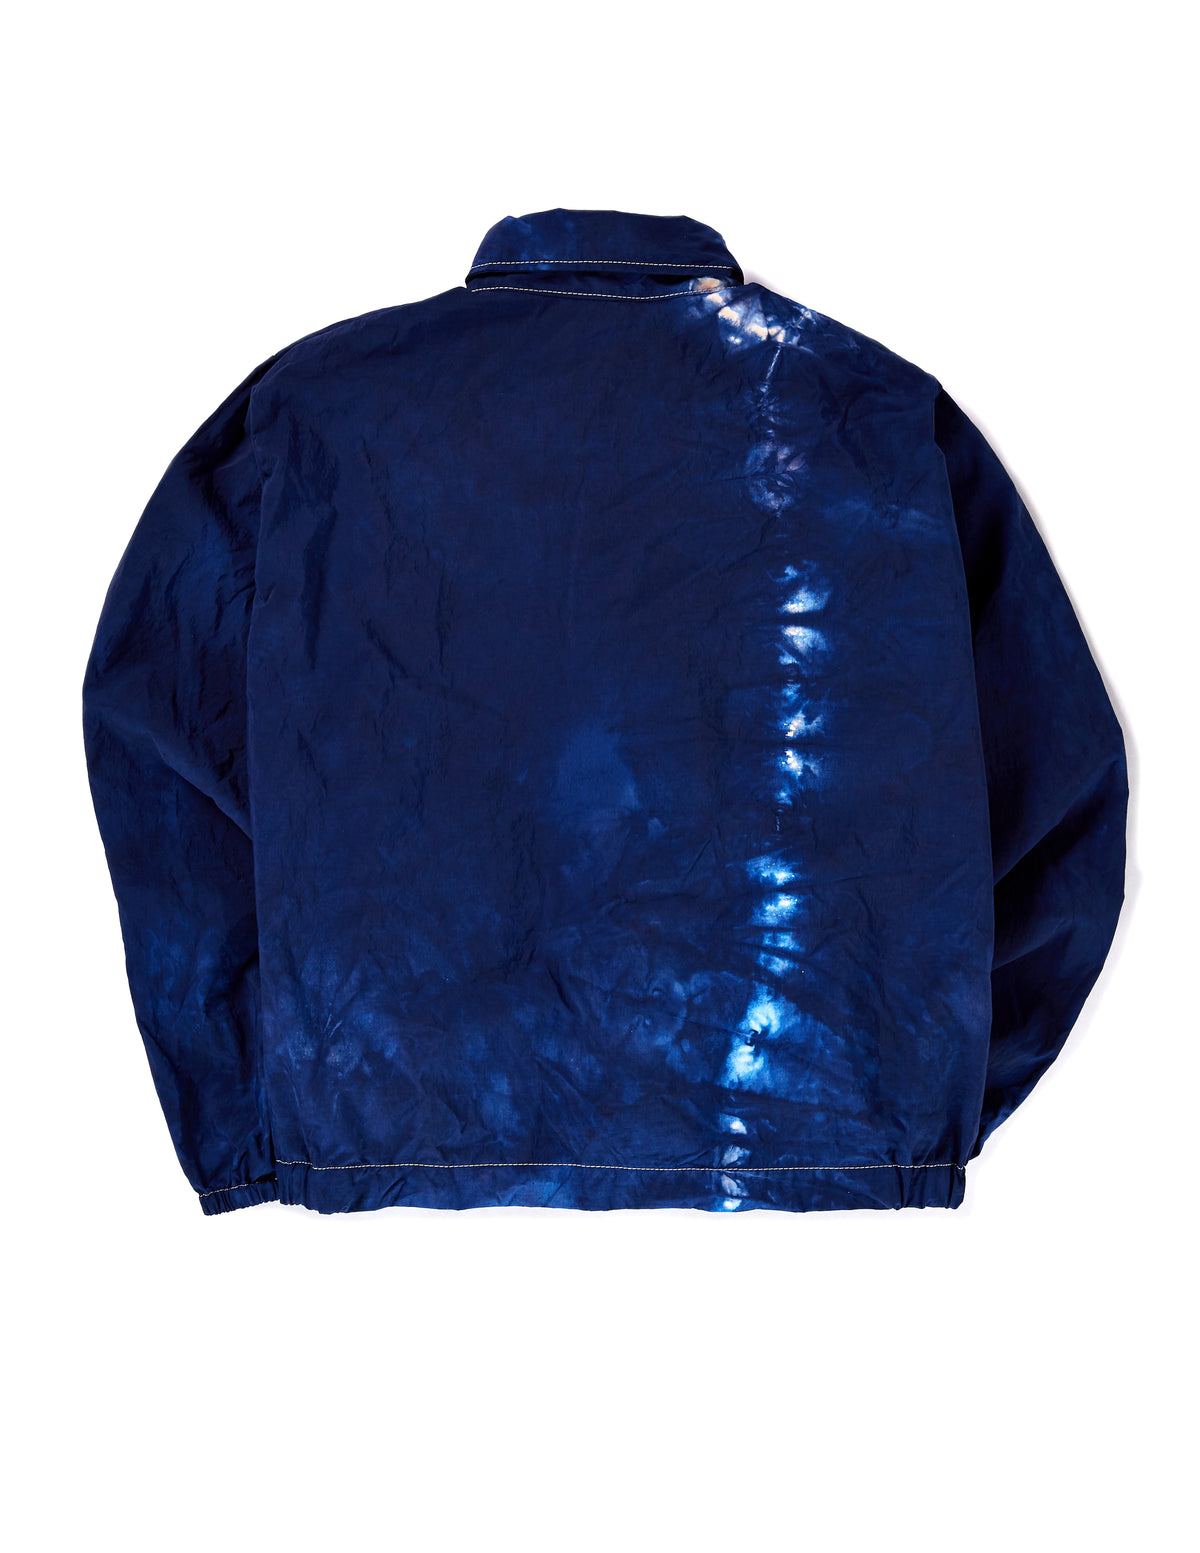 Windbreaker in Navy - riverside tool & dye